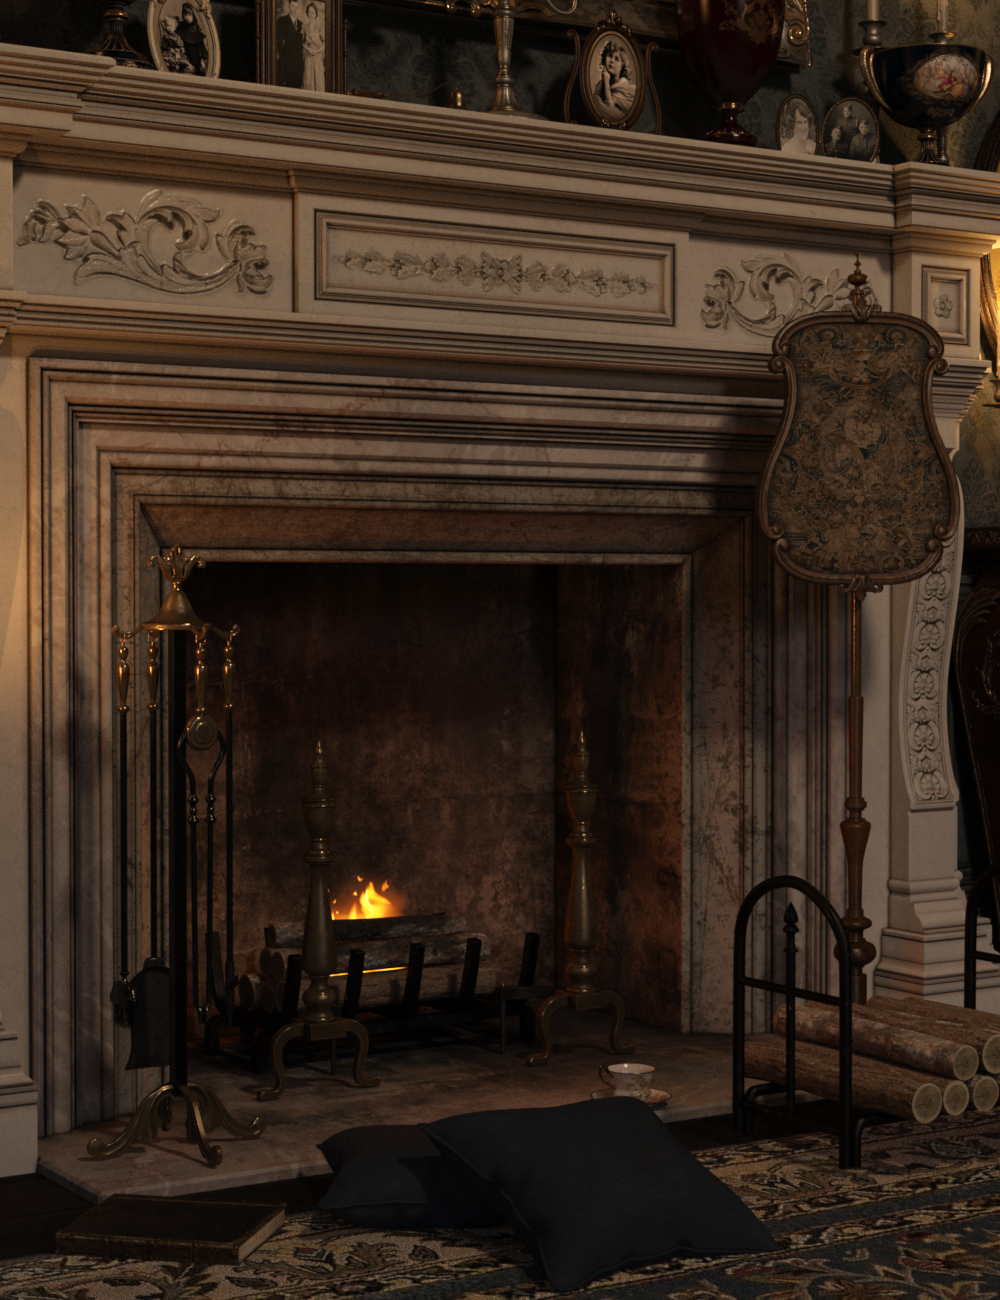 Fireplace Accessories Iray by: LaurieS, 3D Models by Daz 3D